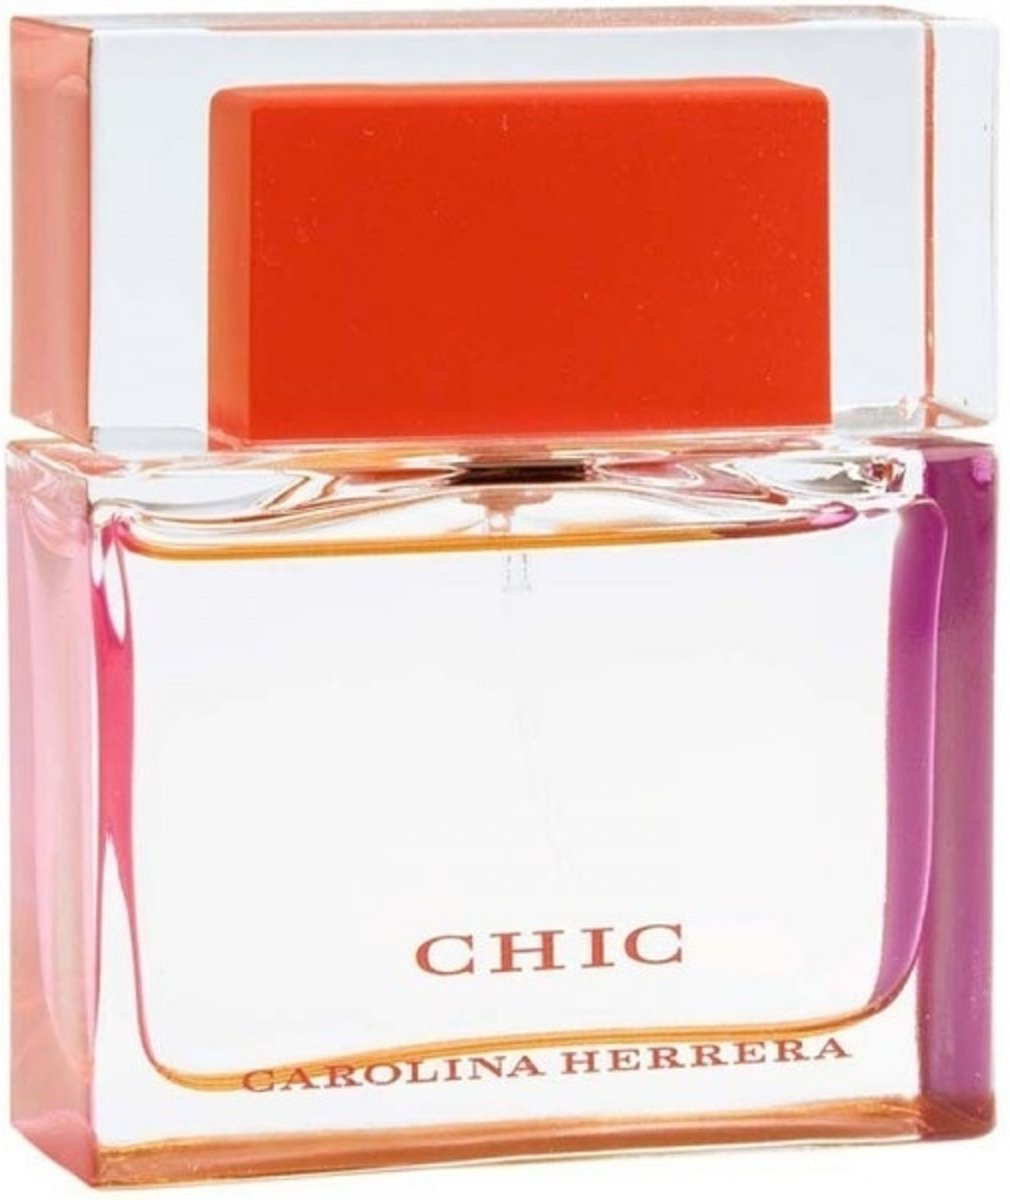 Carolina Herrera Chic for Women - 80 ml - Eau de Parfum